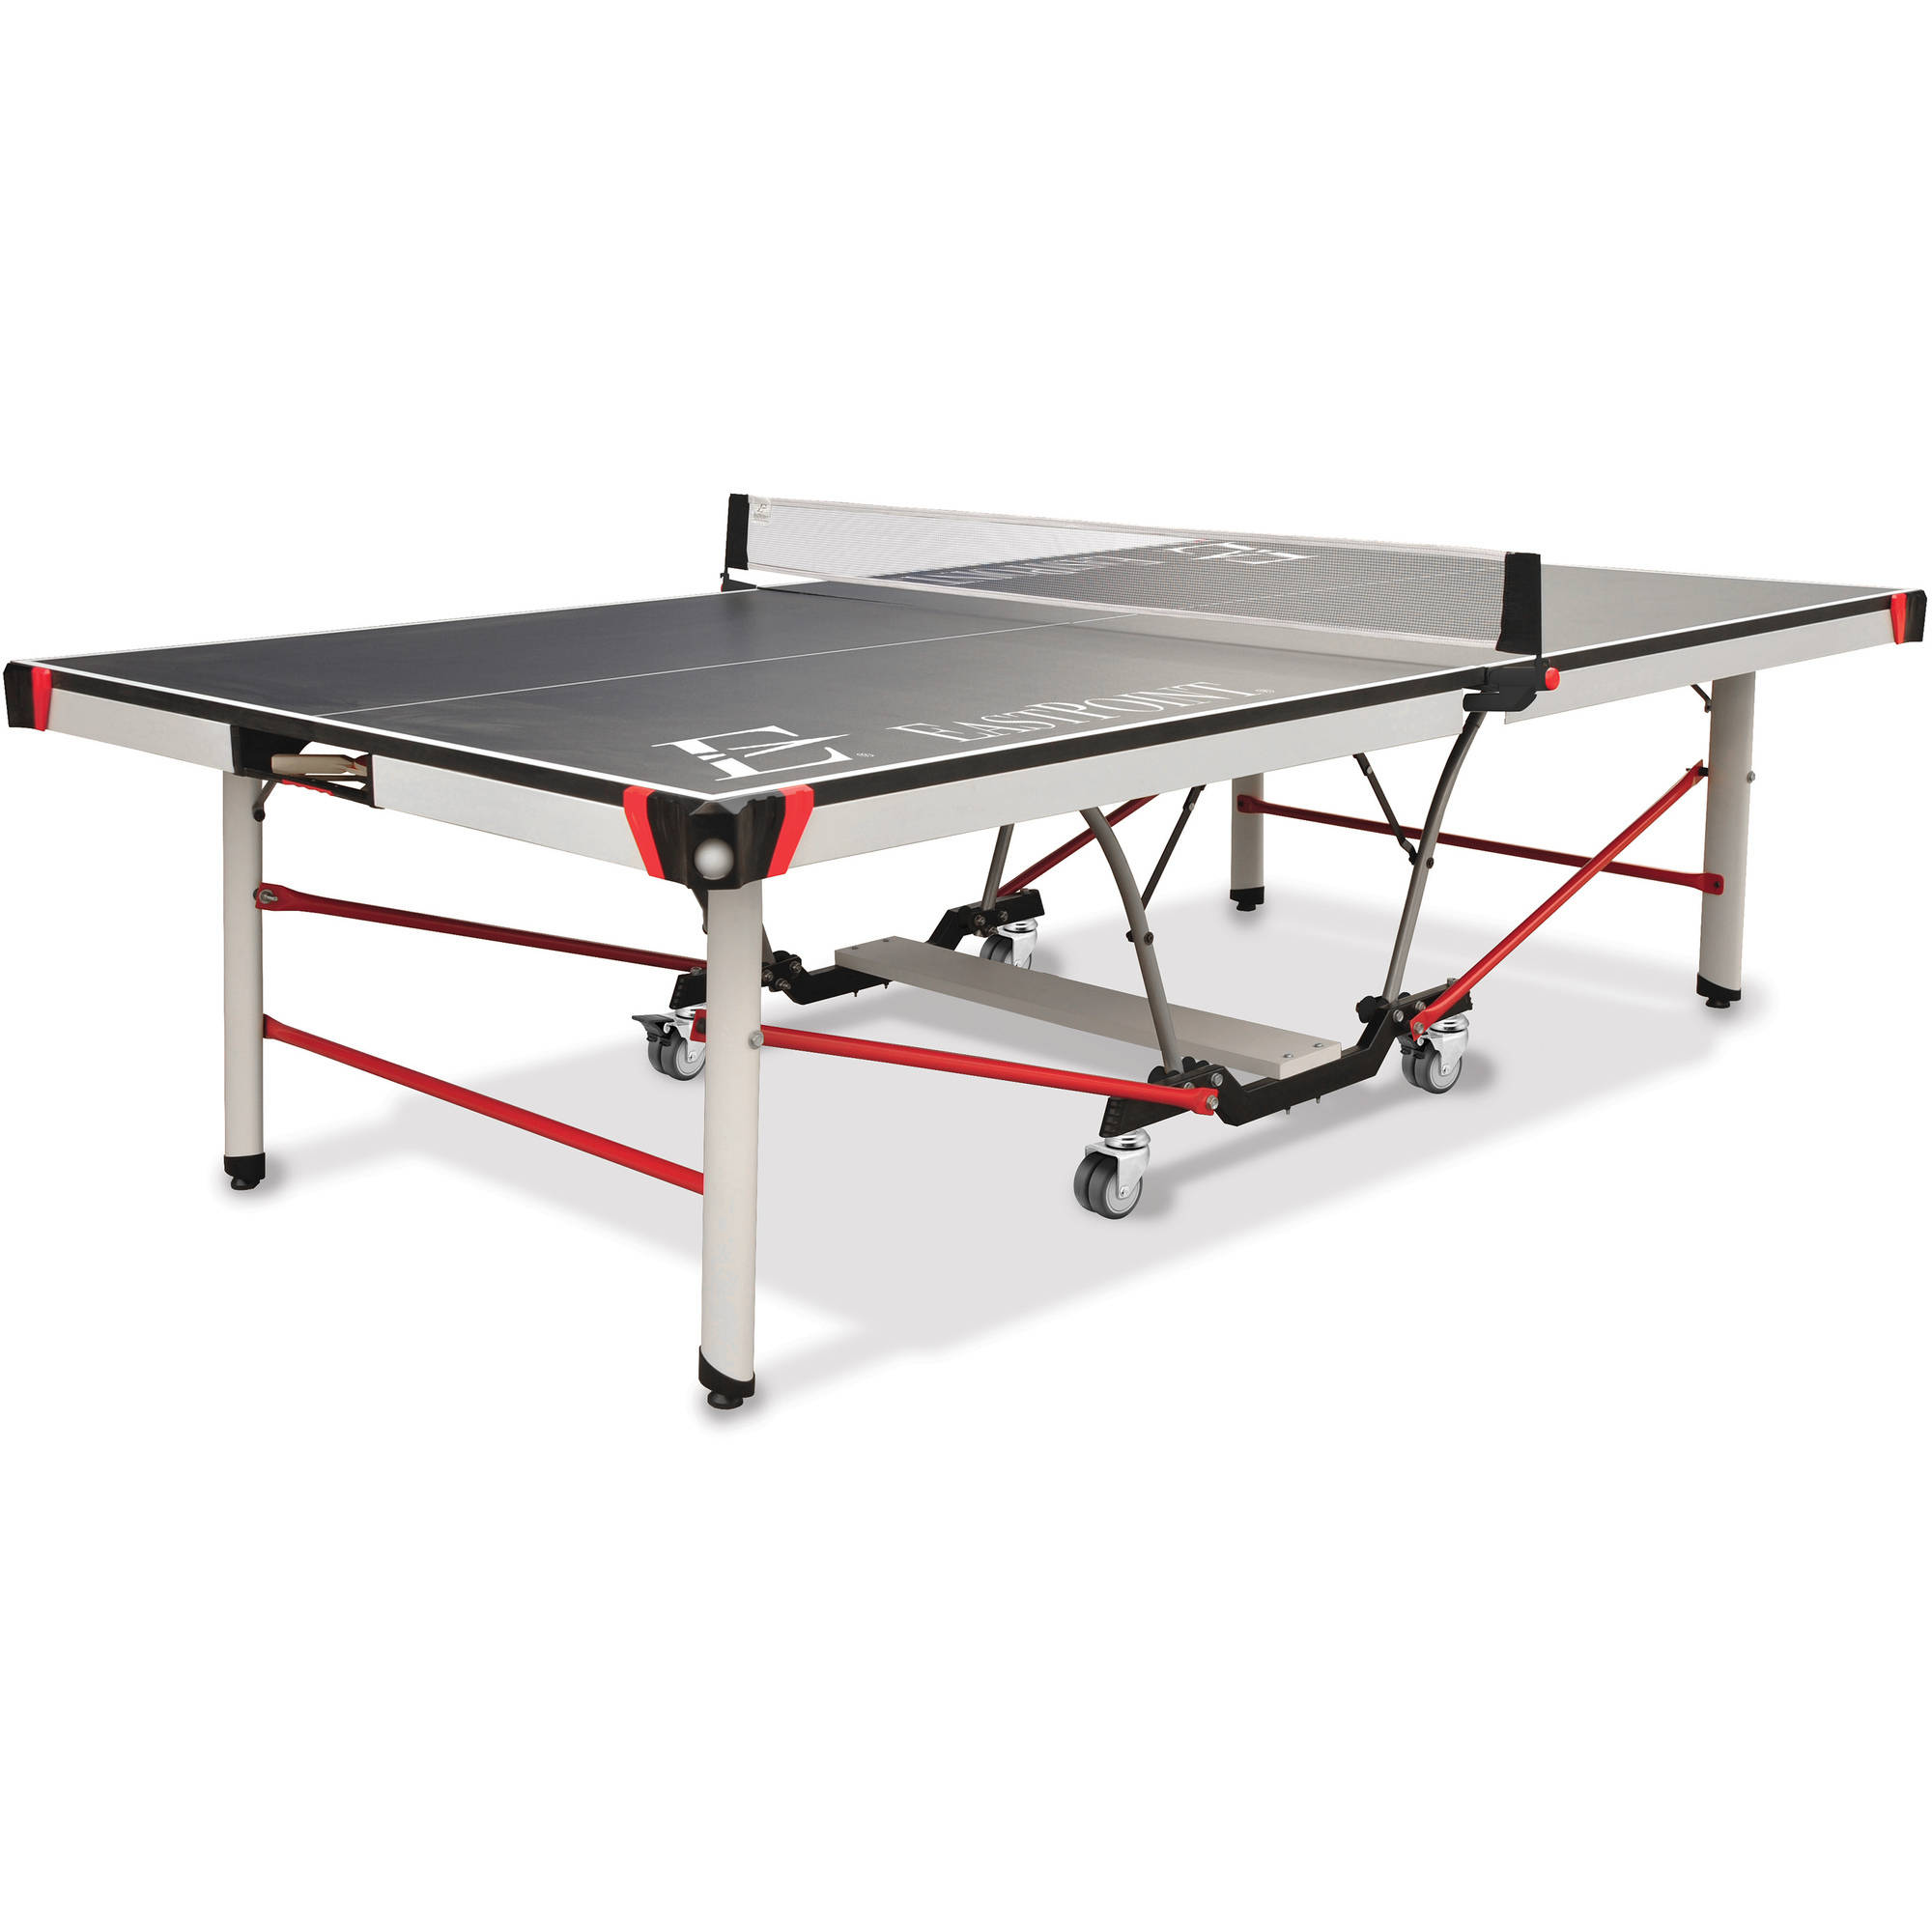 EastPoint Sports EPS 5000 2 Piece Table Tennis Table   25mm Top